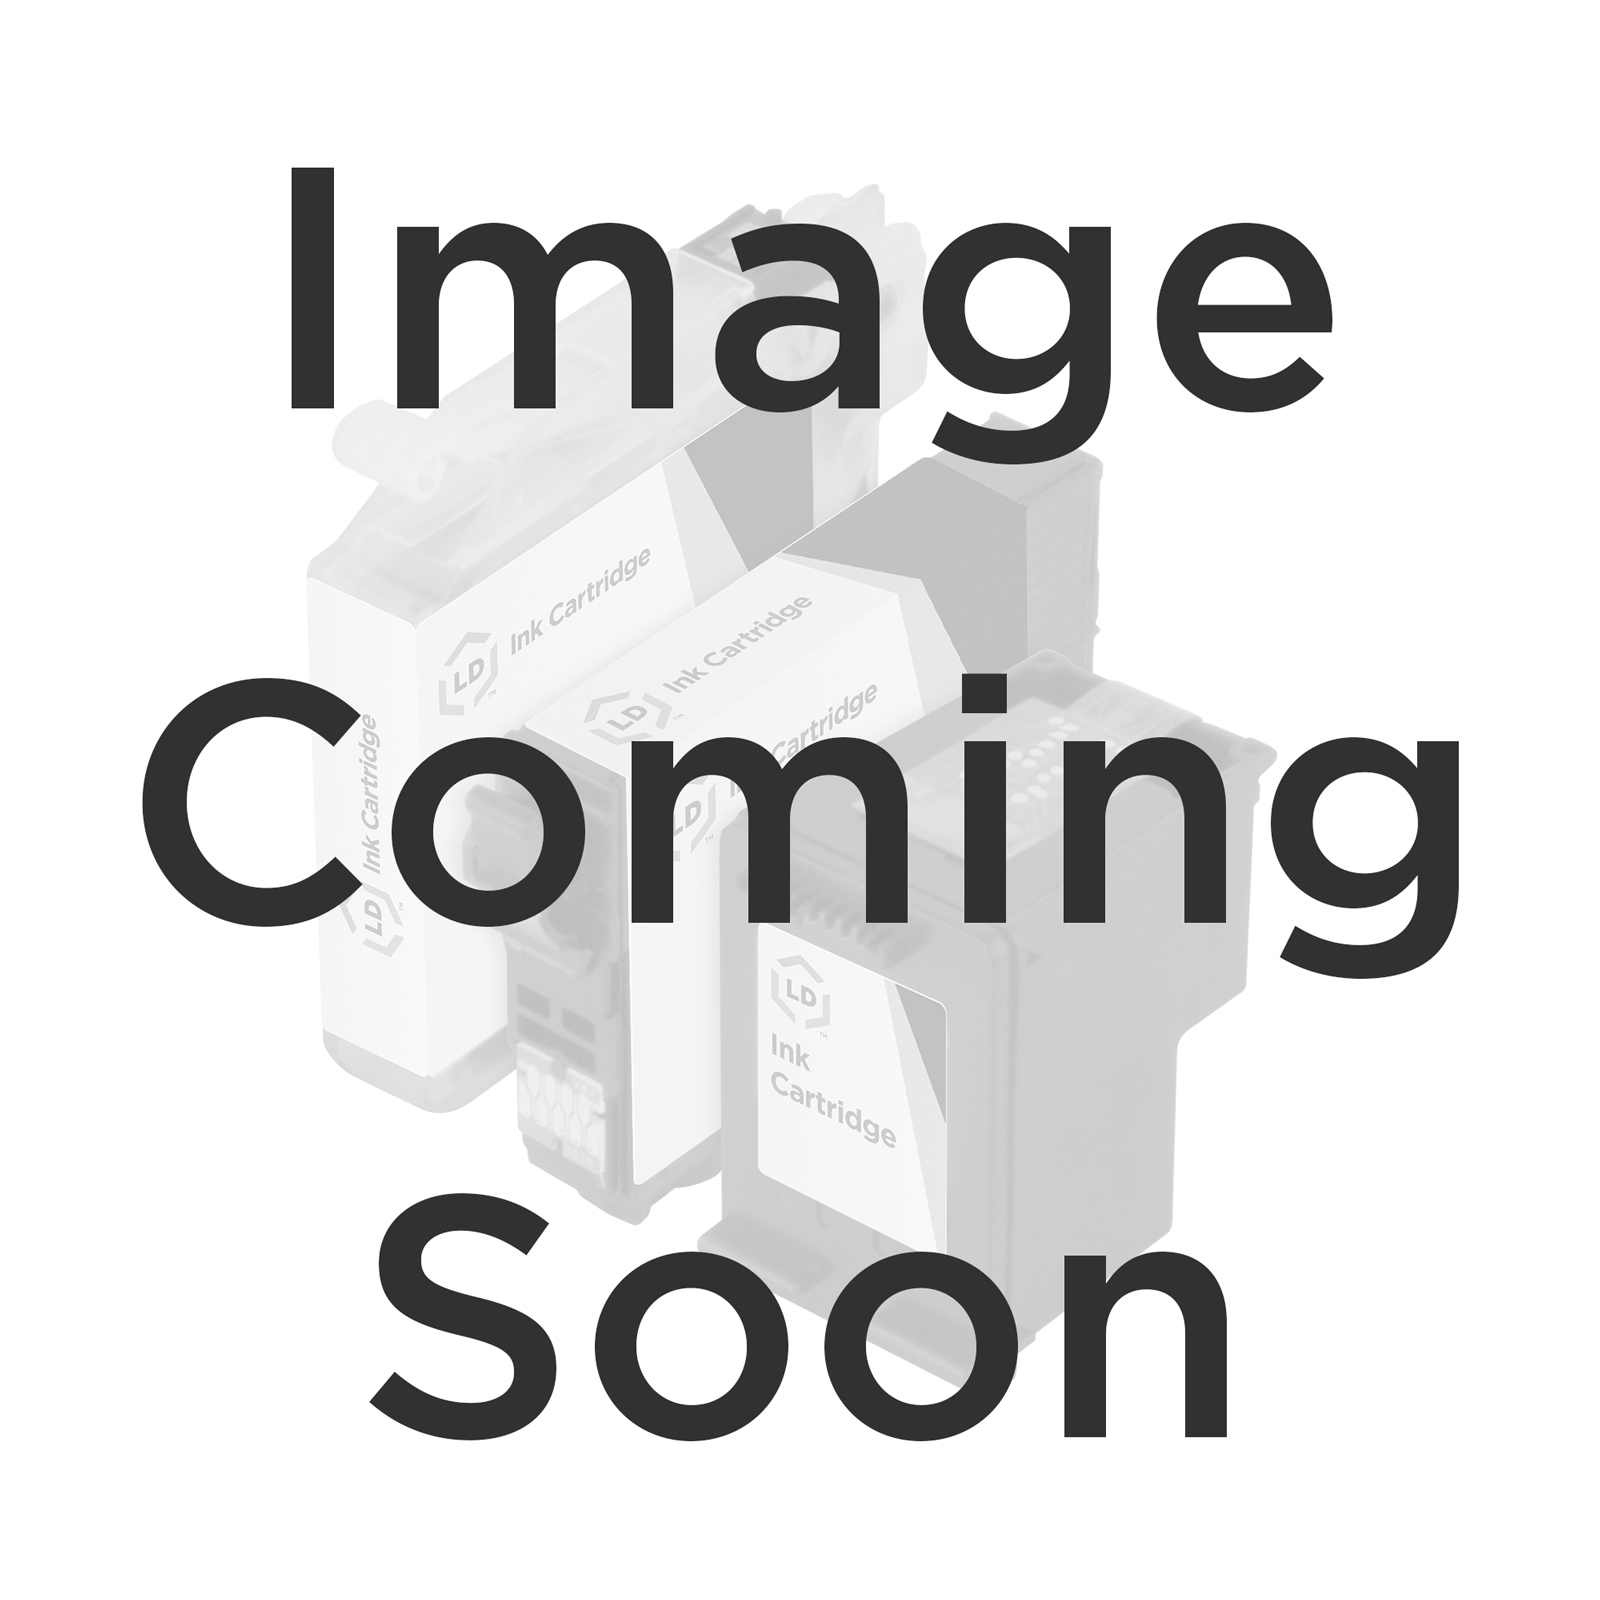 At-A-Glance 2016 QuickNotes Management Planner